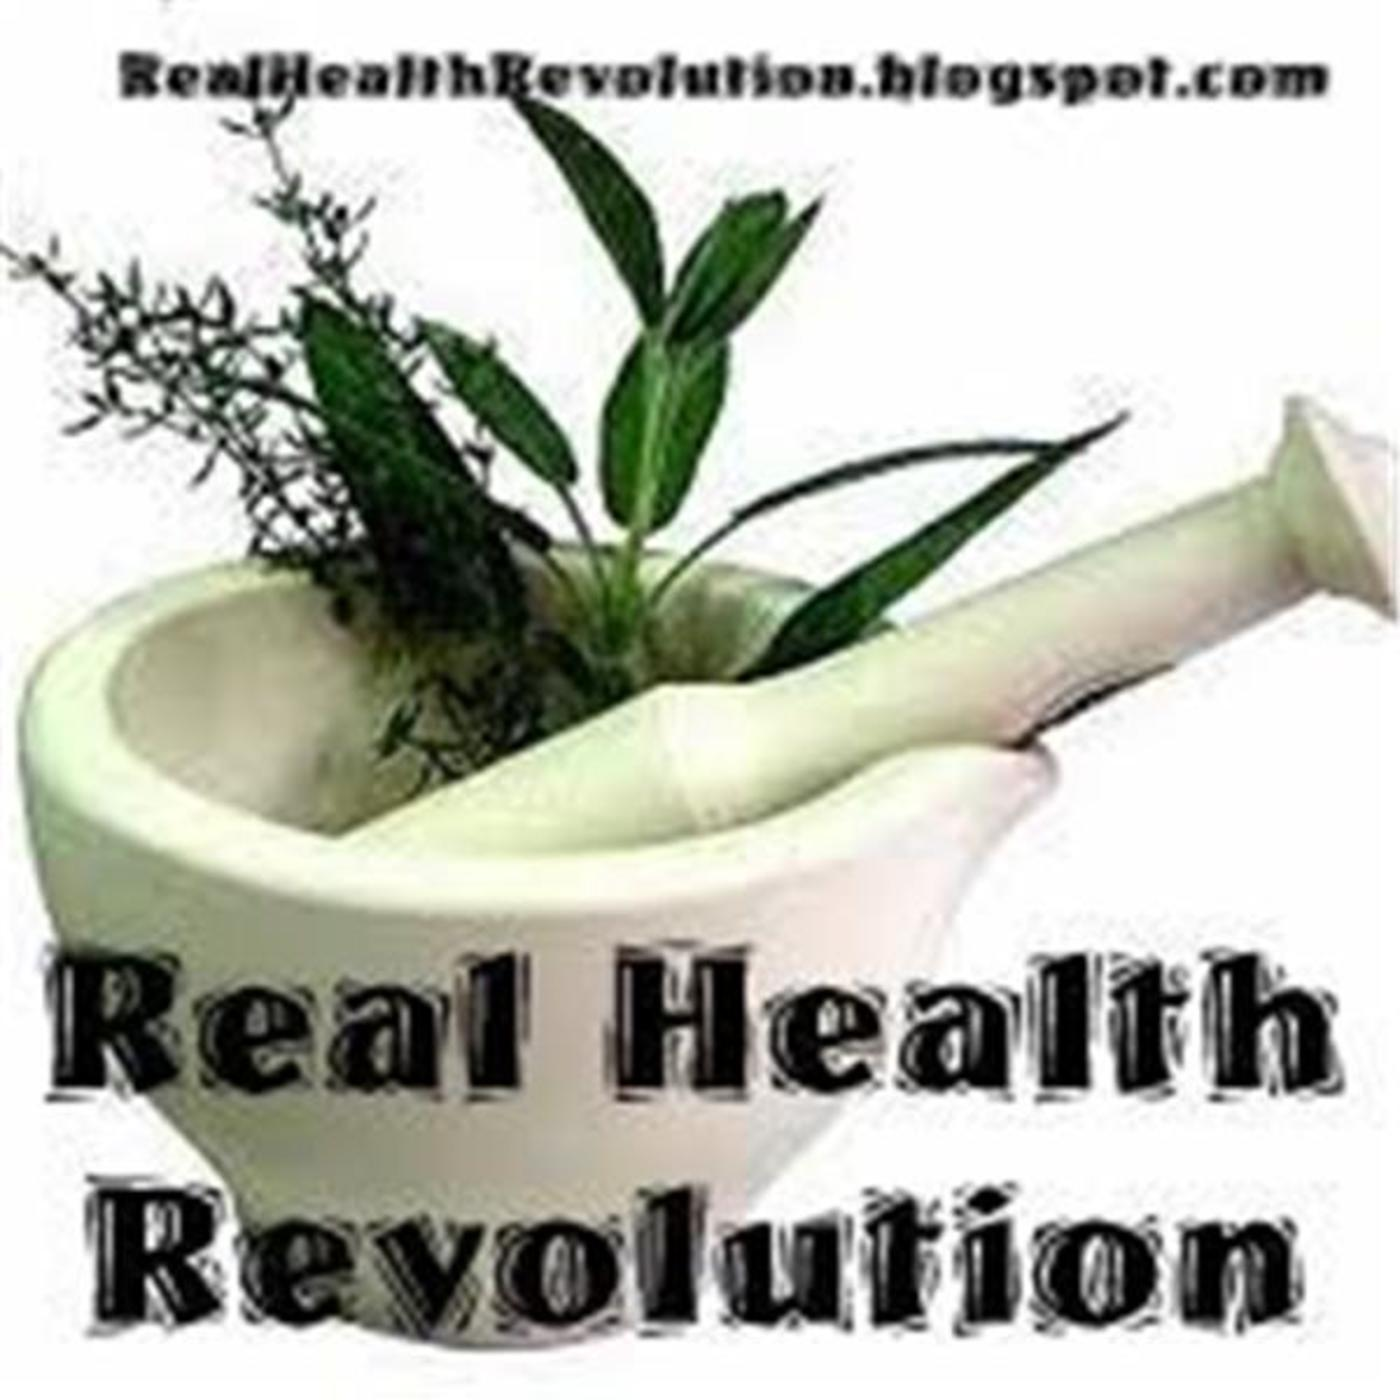 Real Health Revolution